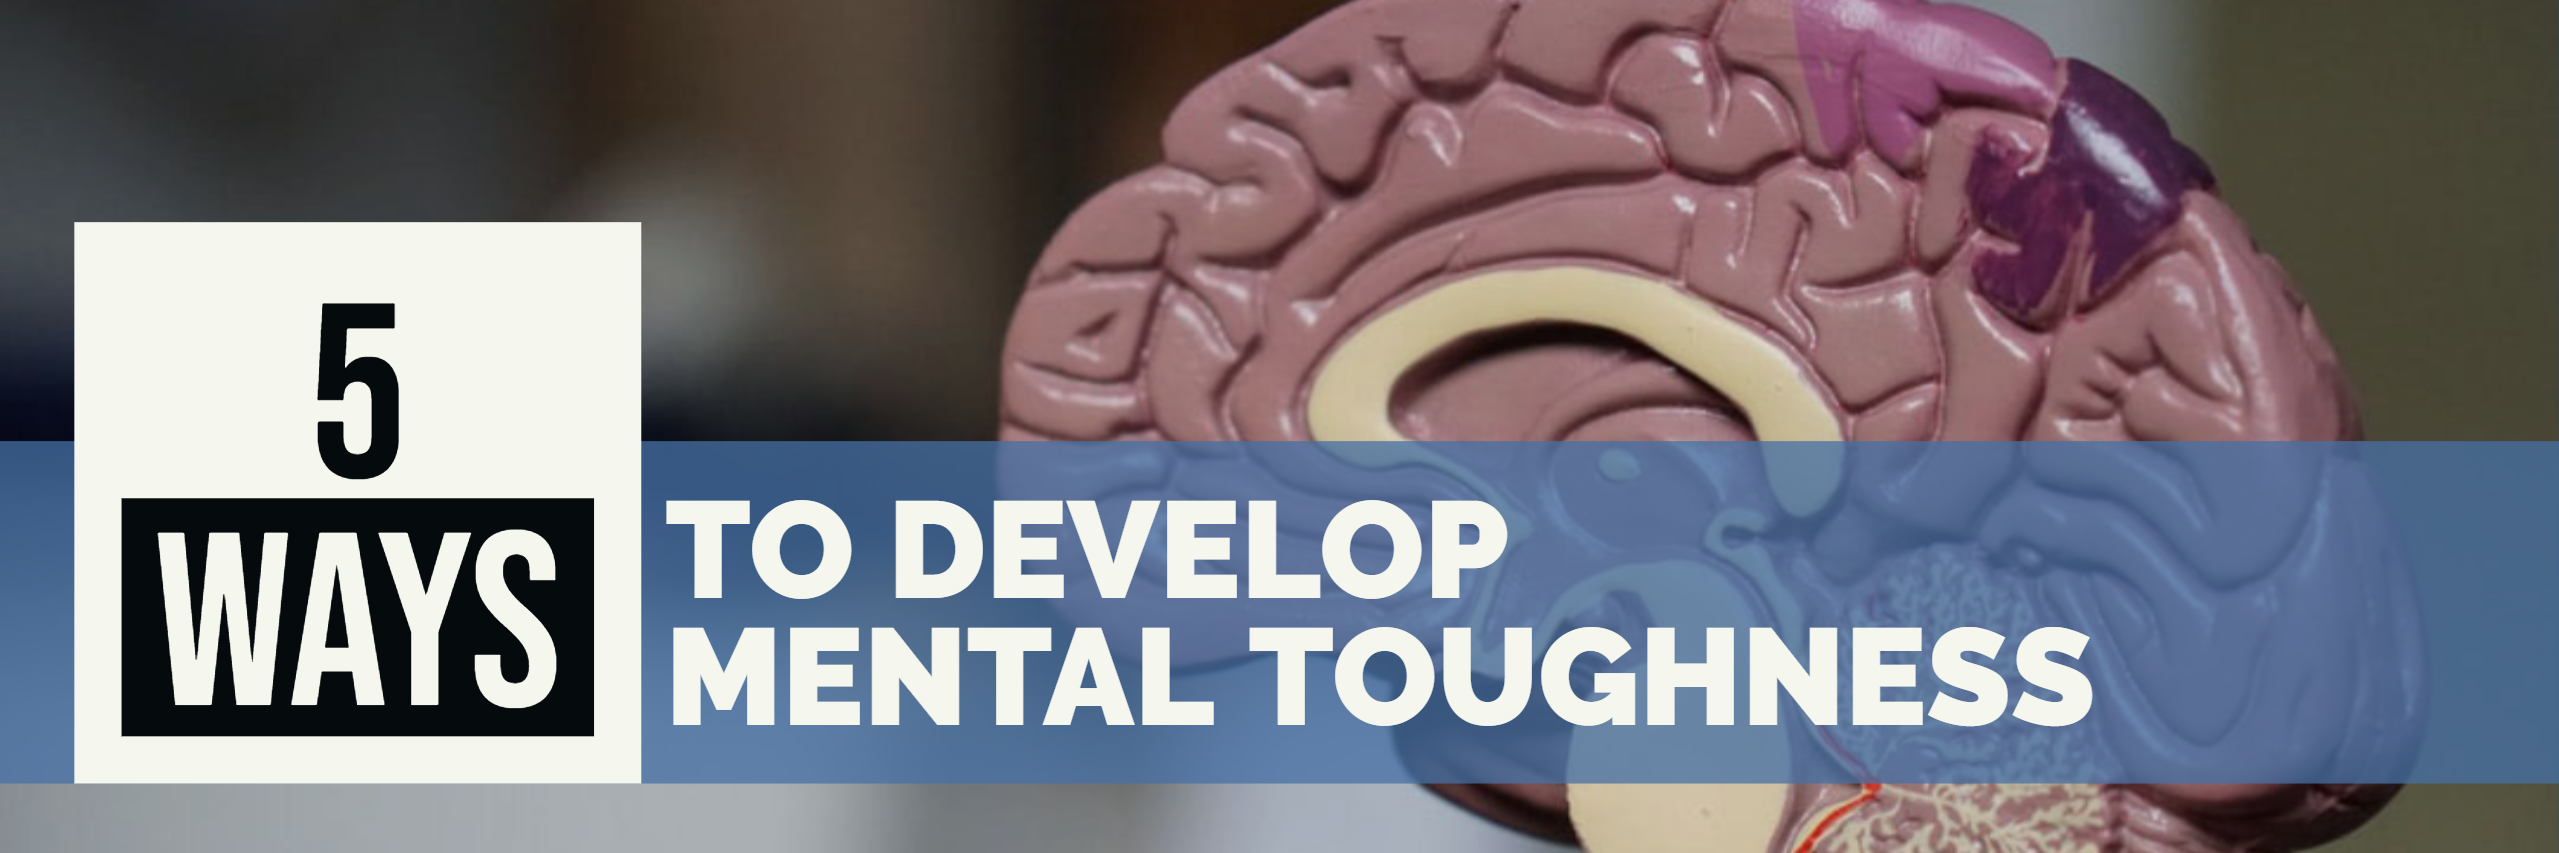 5 Tips on How To Develope Mental Toughness Paul Argueta Corporate Consulting Increase Sales Coach Mentor Mastermind Sales Program Digital Marketer SEO Internet Marketing